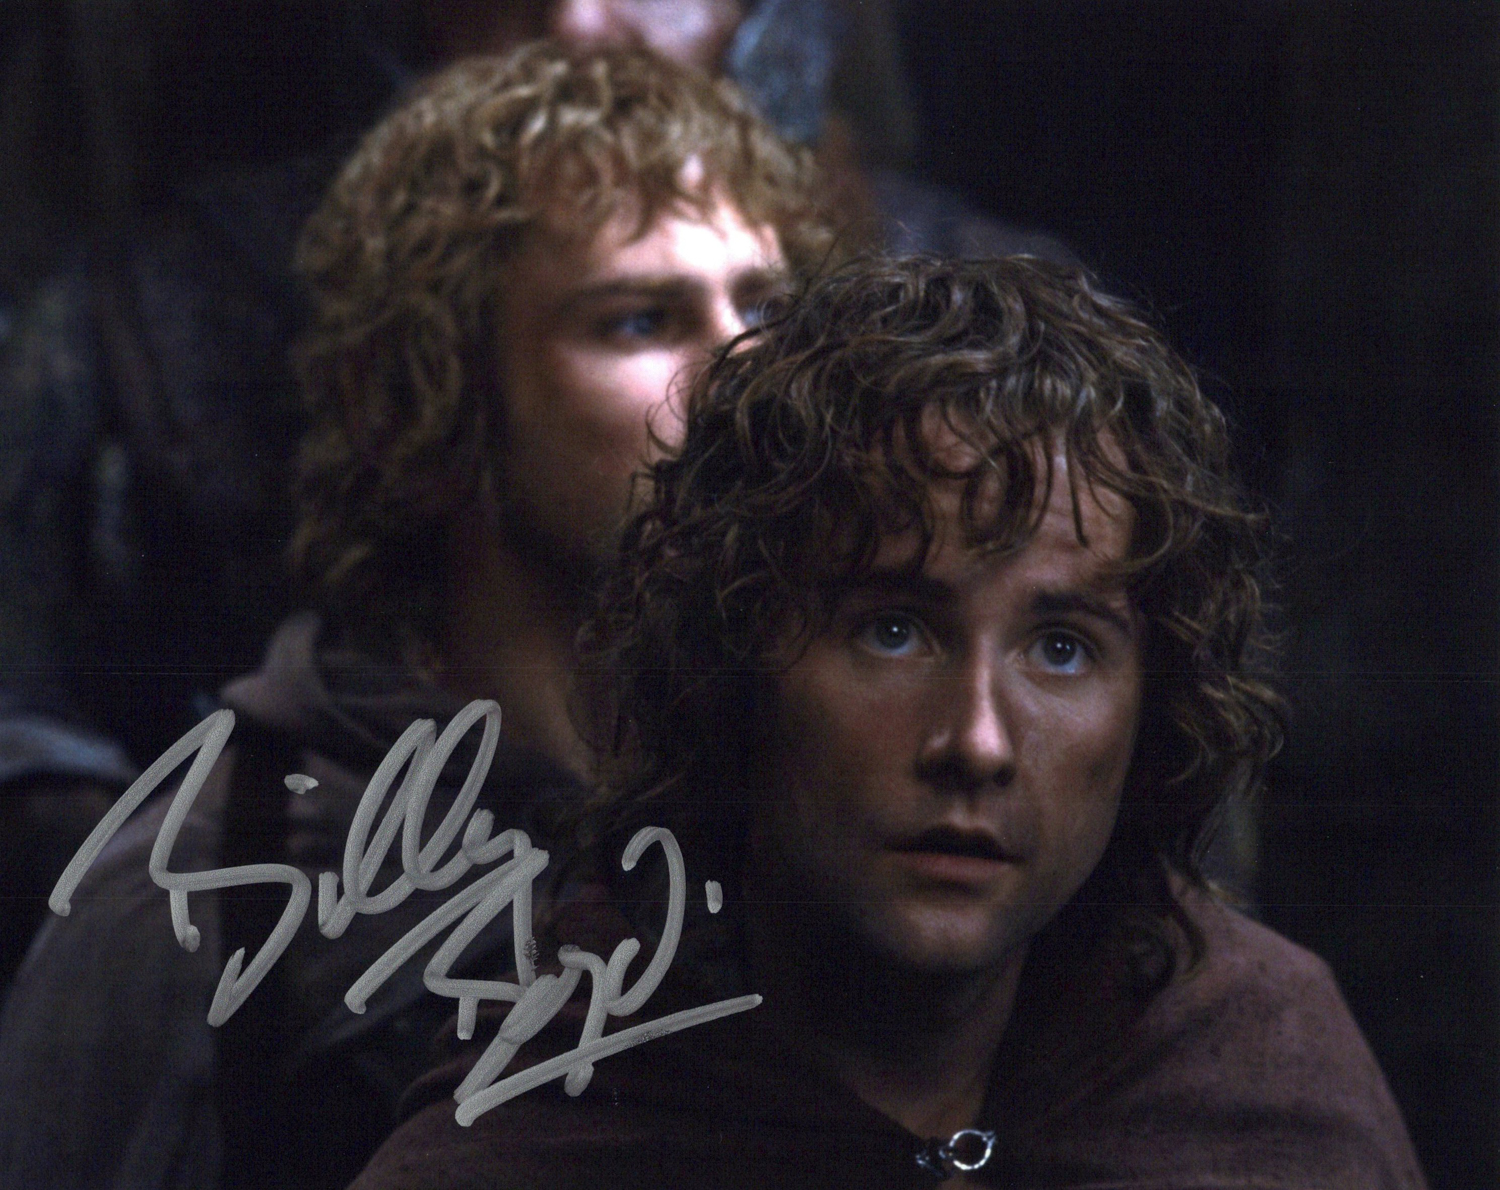 Billy Boyd Original Autogramm auf Foto 20x25cm - Der Herr der Ringe/Lord of the Rings